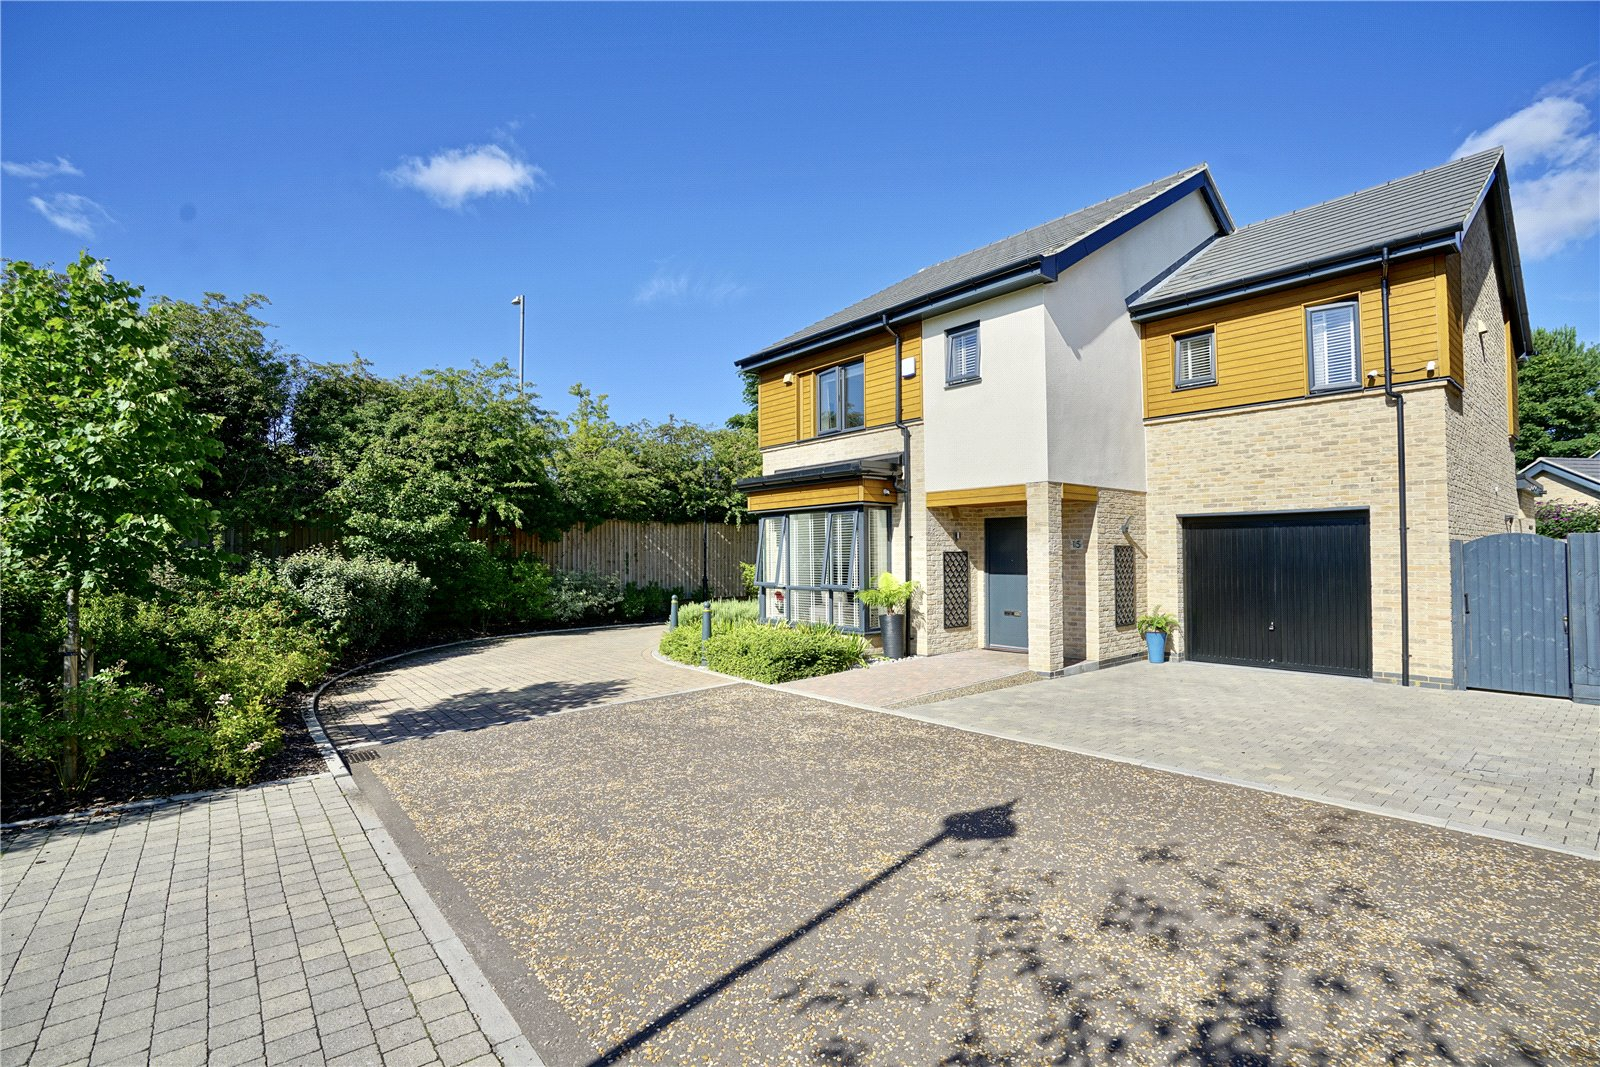 4 bed house for sale in Eaton Close, Eaton Ford - Property Image 1